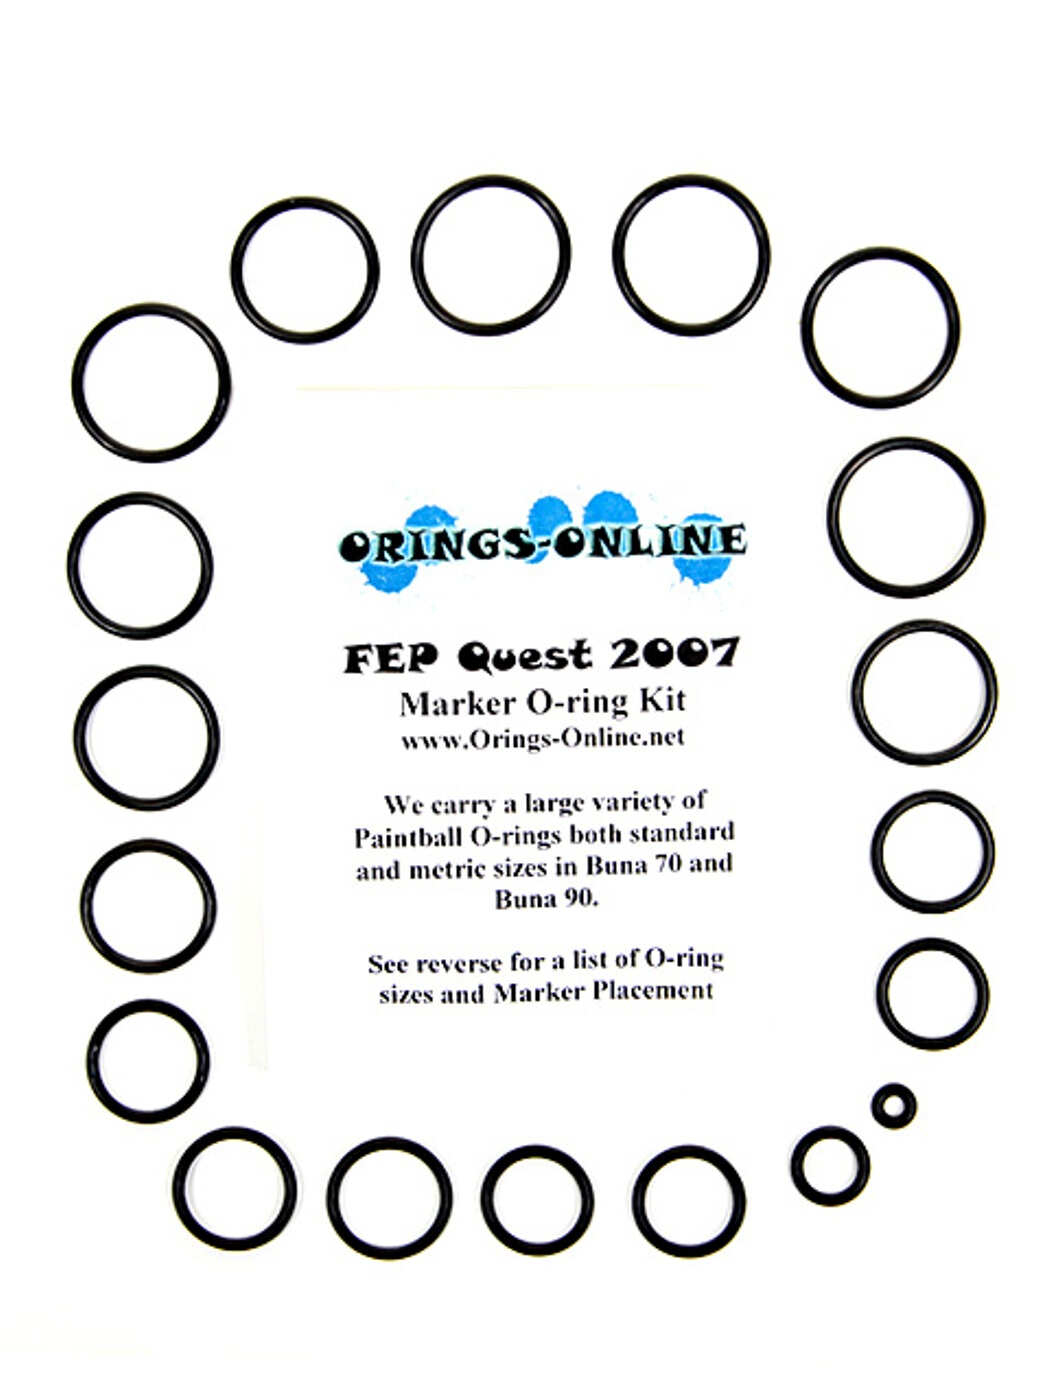 FEP Quest 07 Marker O-ring Kit